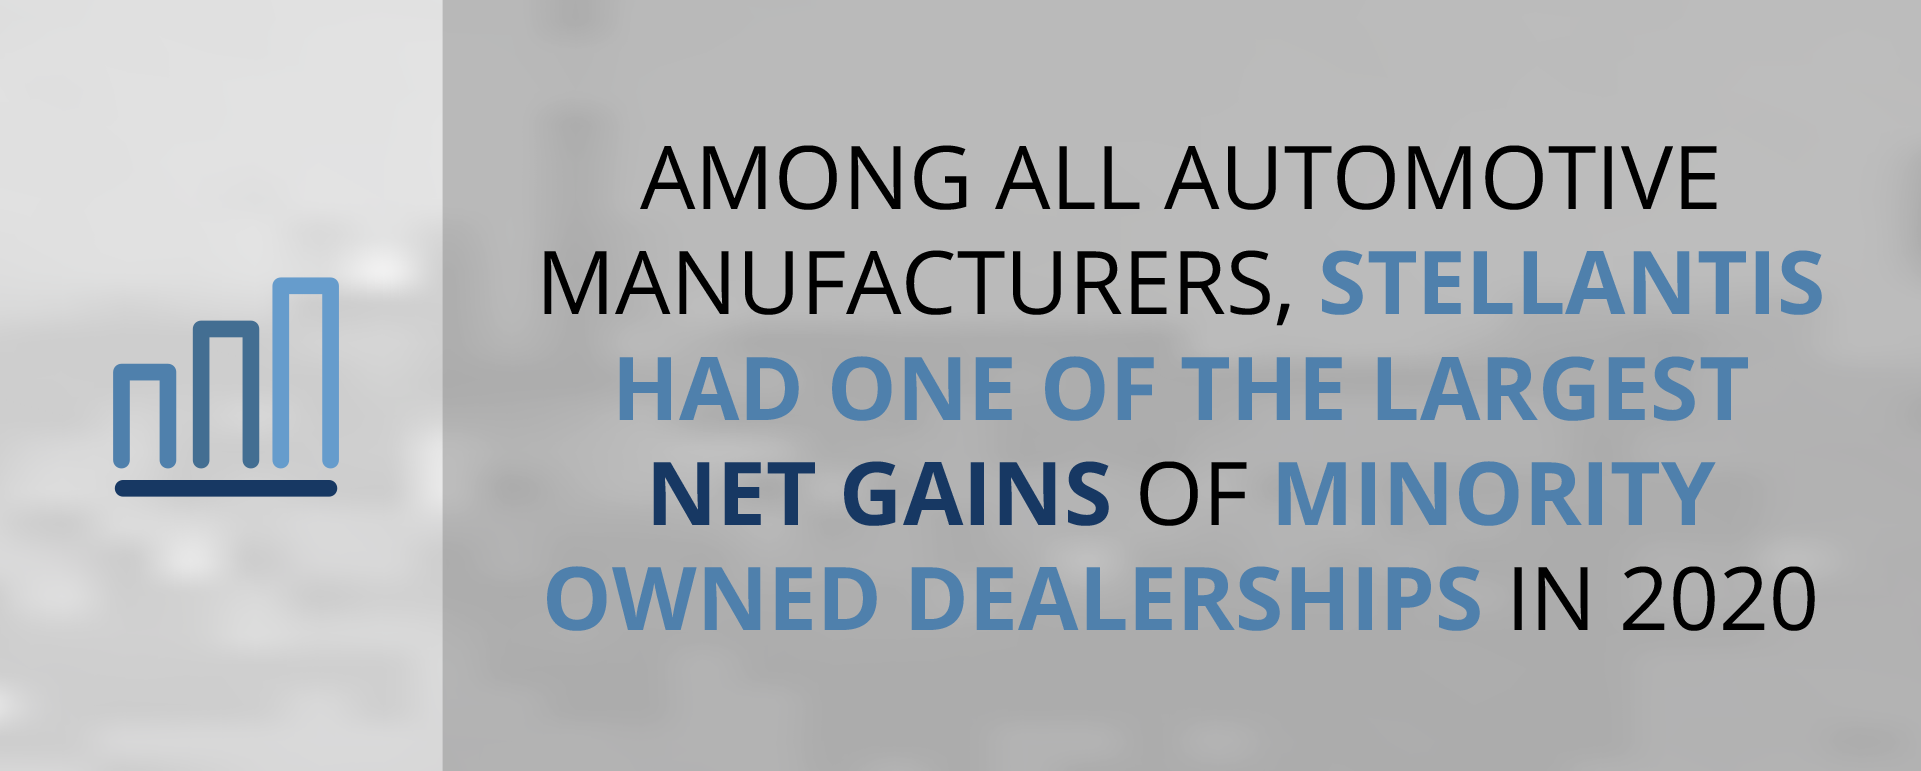 Among all automotive manufacturers, FCA had one of the largest net gains of minority owned dealerships in 2018